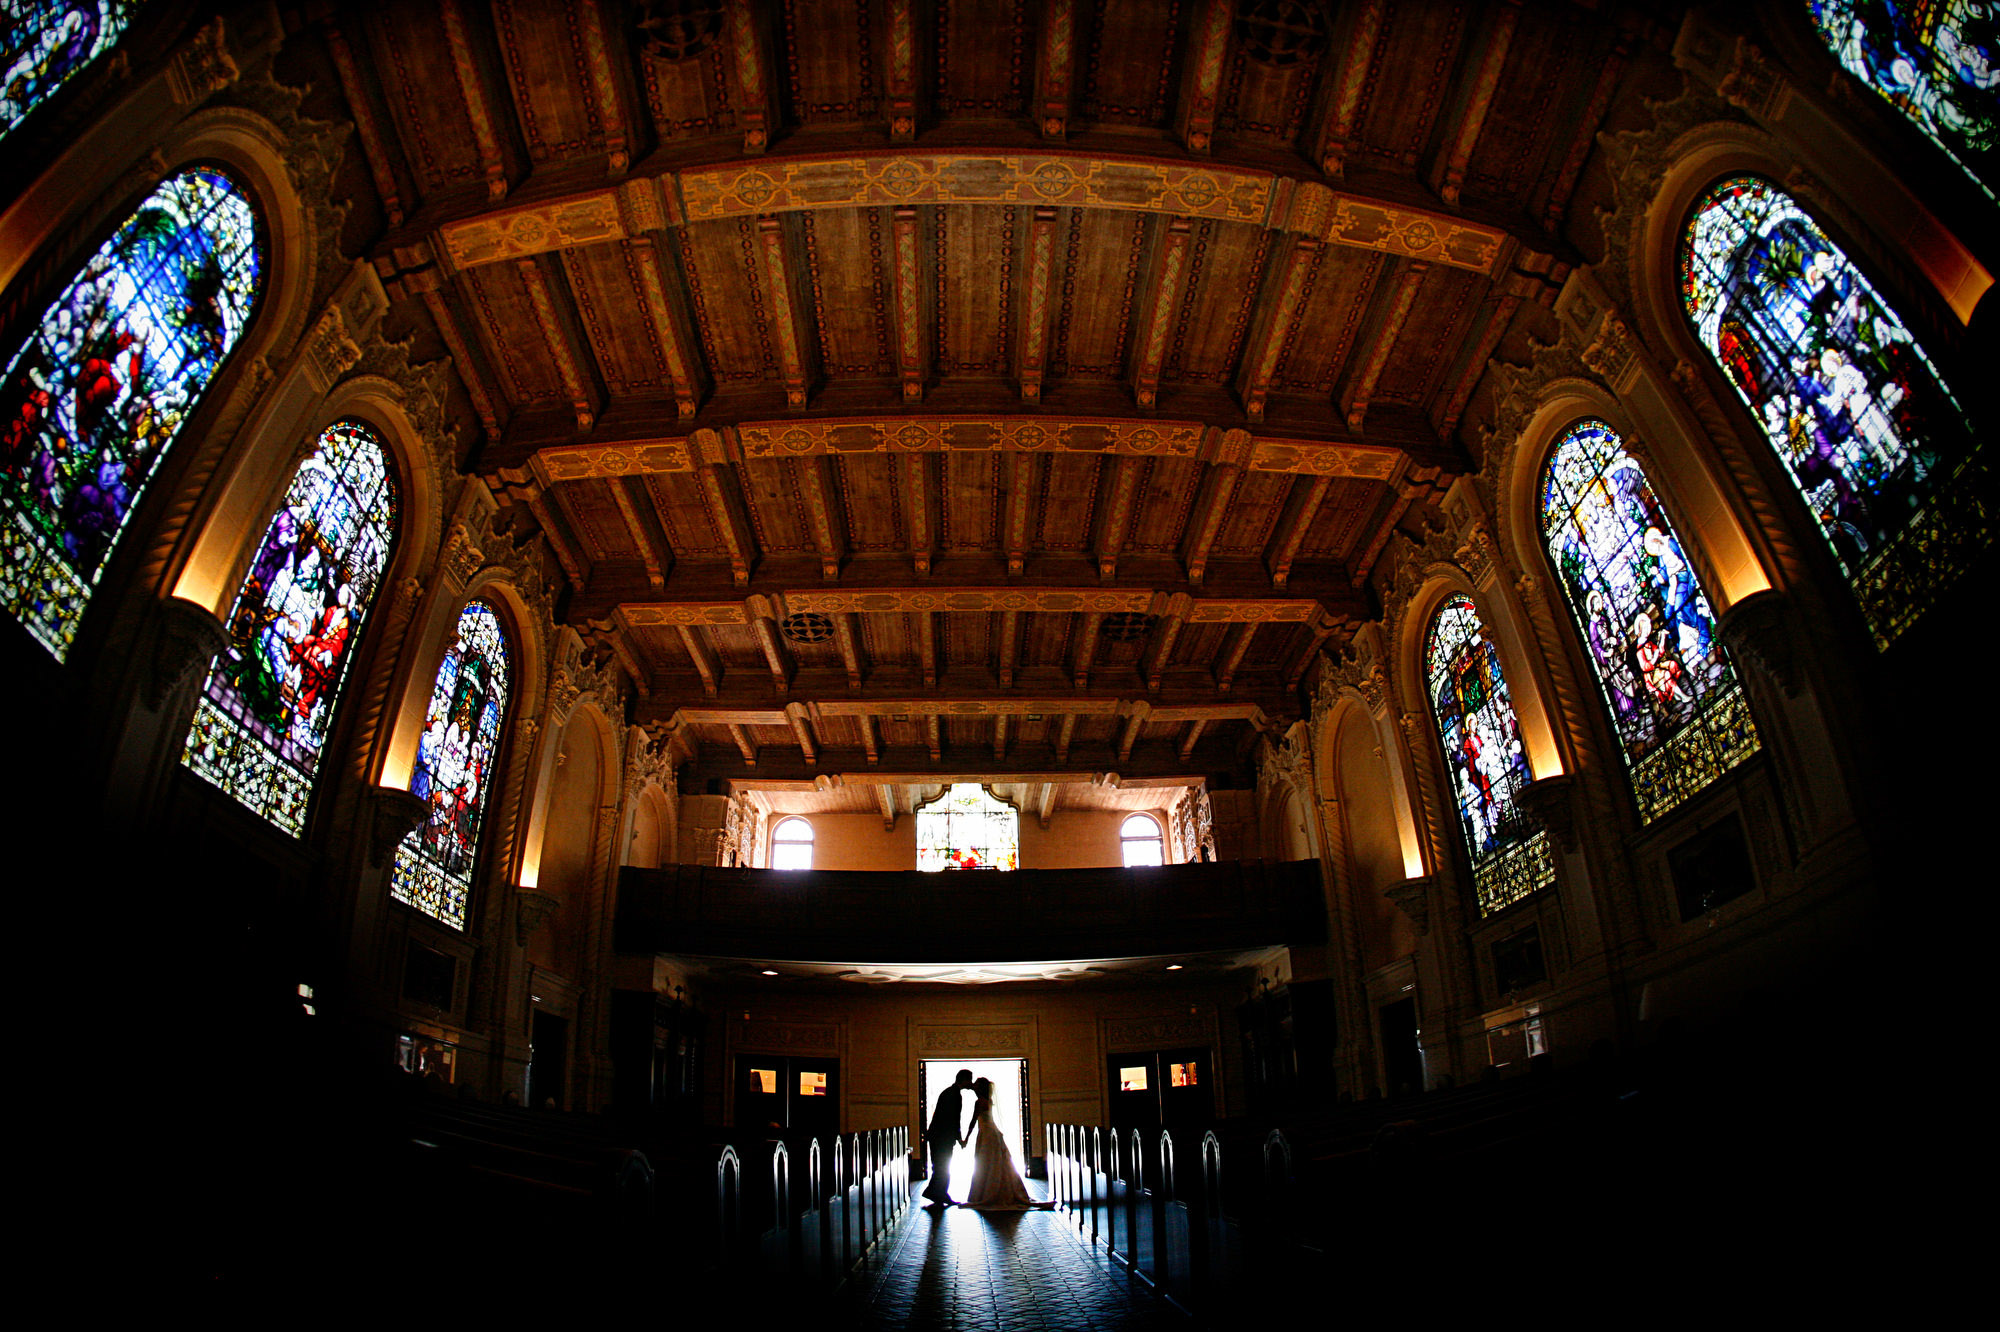 Silhouette of Couple kissing in church - photo by Jerry Ghionis